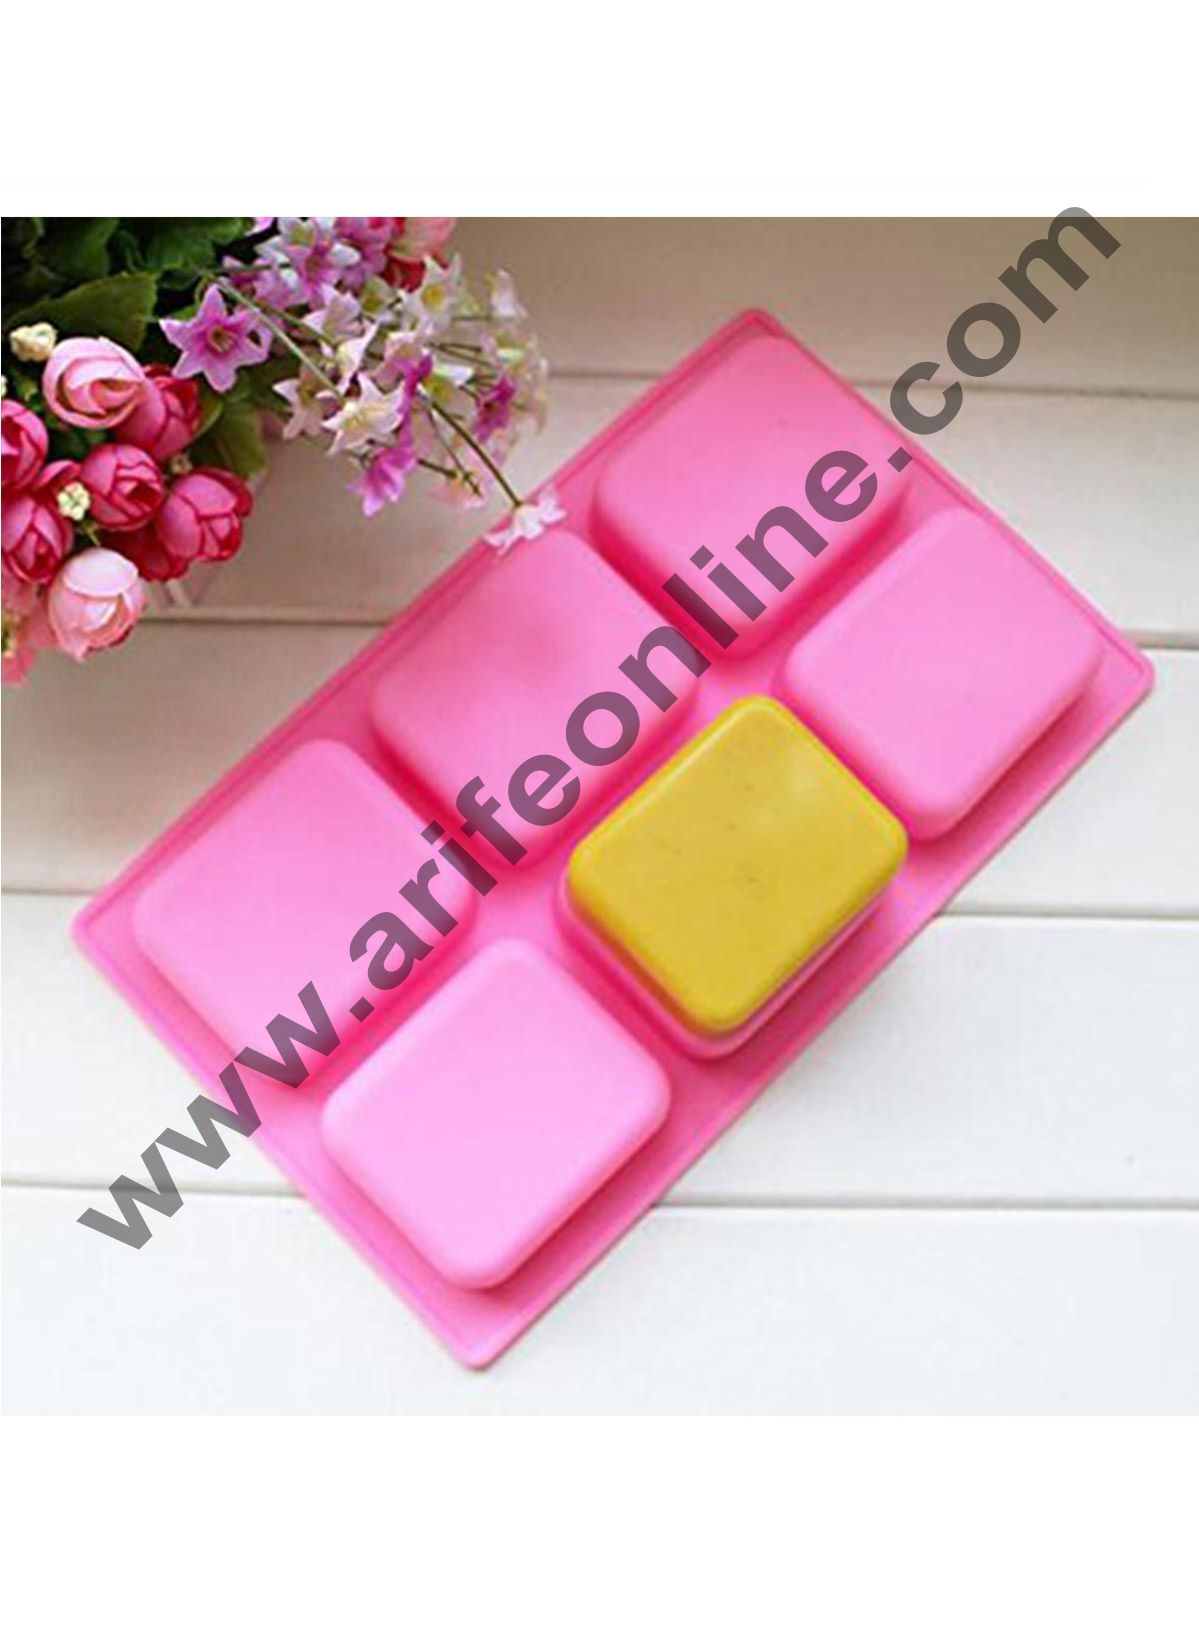 Cake Decor 6 Cavity Silicone Rounded Rectangle Muffin Soap Jelly Baking Mold for making Homemade and Melt and Pour Soaps